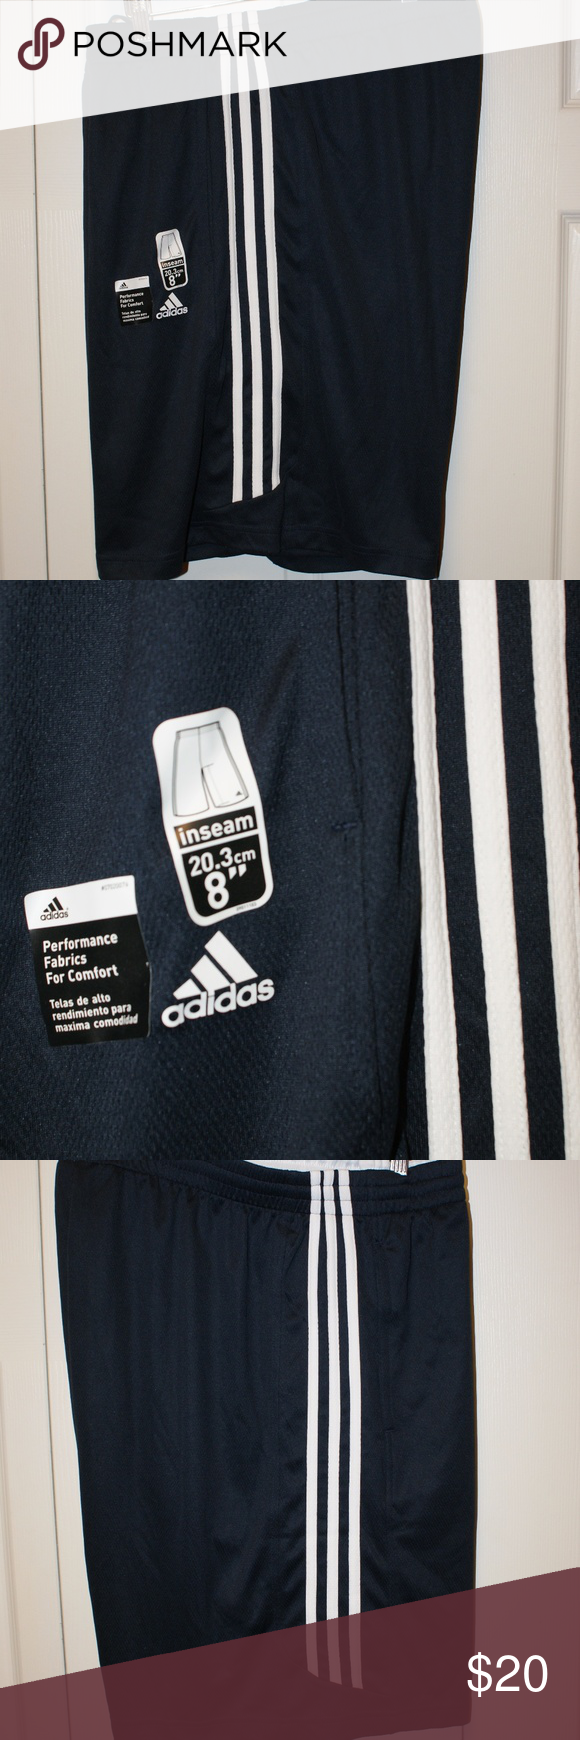 Adidas Shorts XXL....NWT Adidas Shorts XXL....NWT....side pockets....drawstring waist....smoke/pet free....shipping within 1 business day....please ask any questions. adidas Shorts Athletic